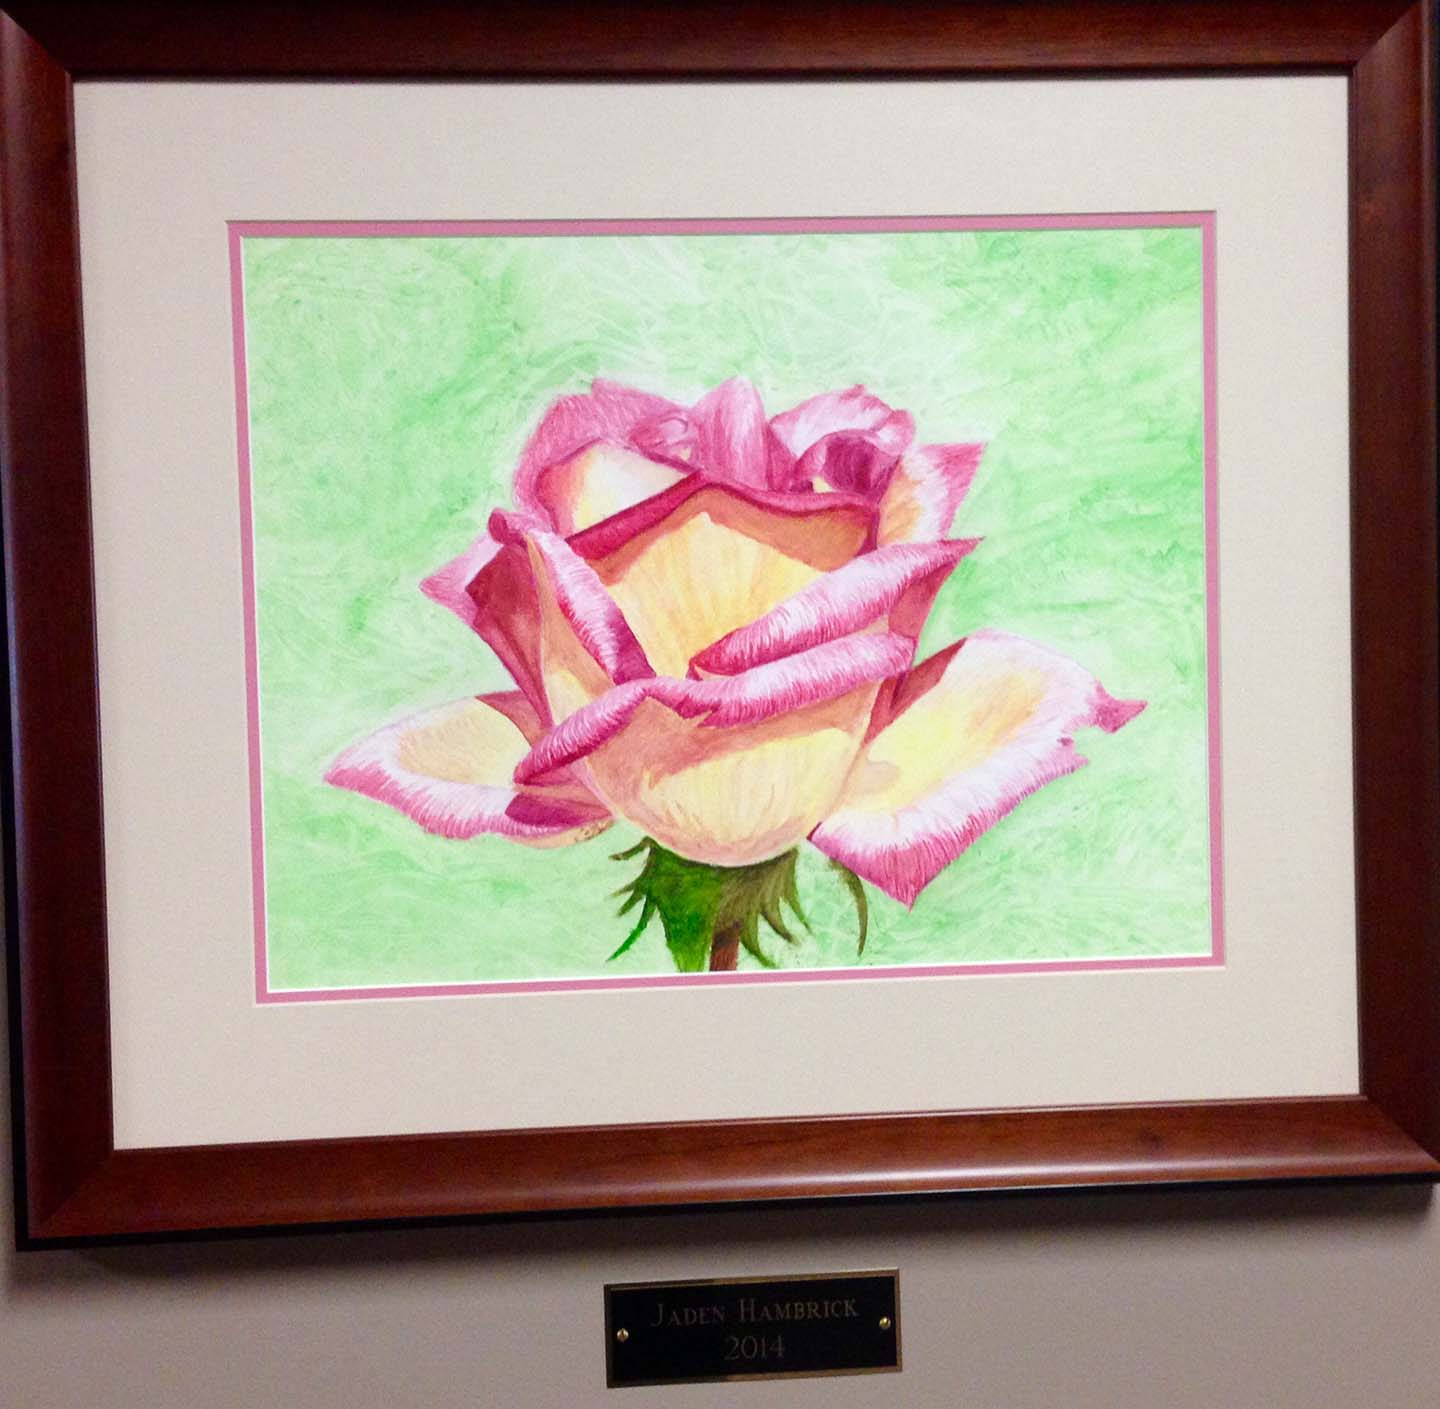 Artwork Ivory Rose with Fuchsia Tipped Edges